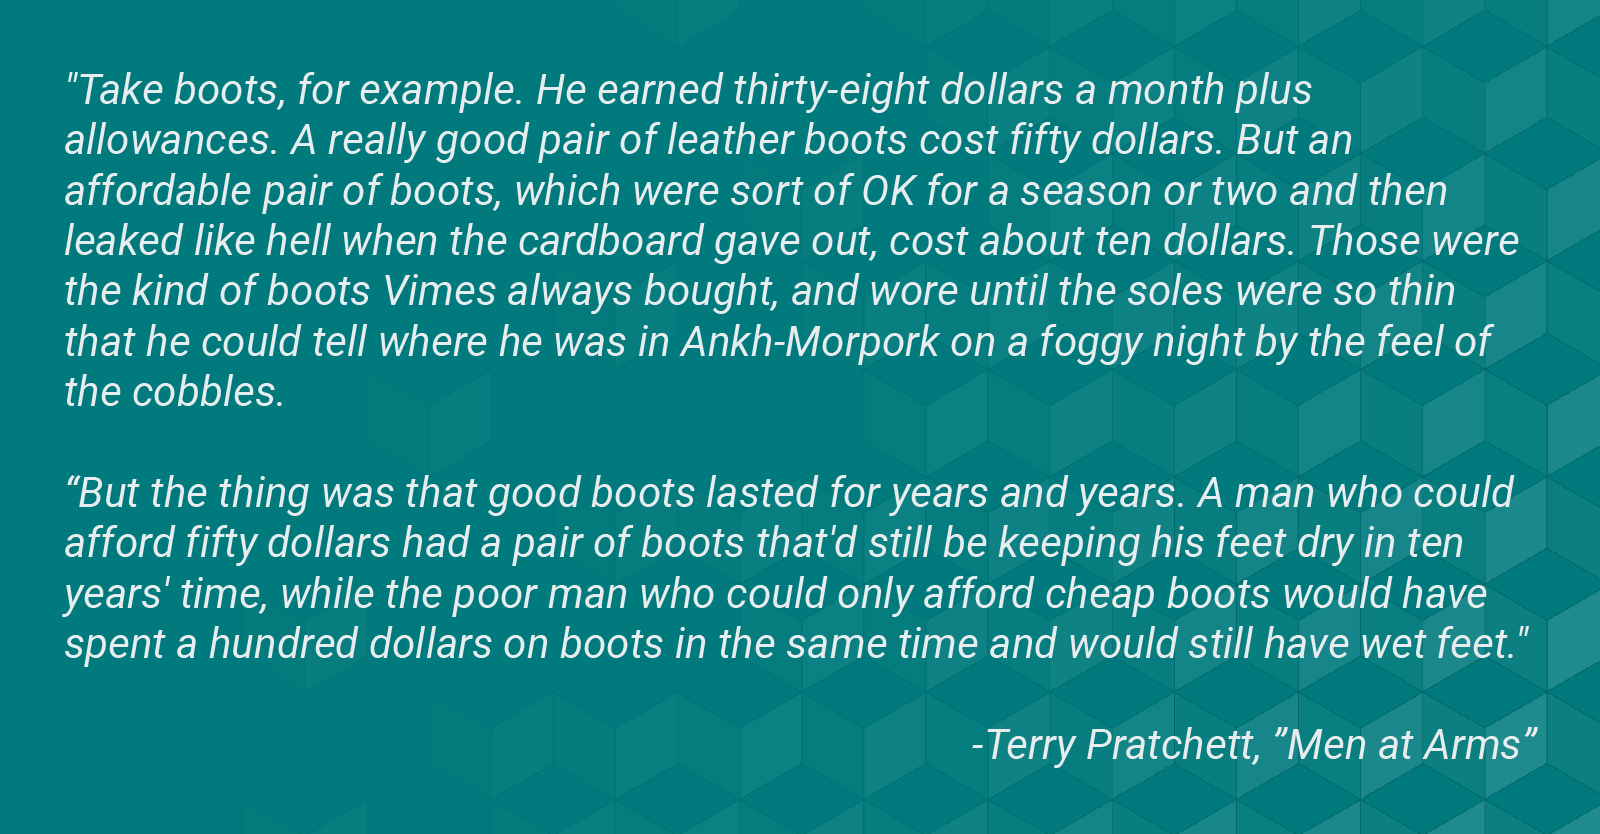 "Image with a quote from Terry Pratchett novel ""Men at Arms."" Quote reads, ""Take boots, for example. He earned thirty-eight dollars a month plus allowances. A really good pair of leather boots cost fifty dollars. But an affordable pair of boots, which were sort of OK for a season or two and then leaked like hell when the cardboard gave out, cost about ten dollars. Those were the kind of boots Vimes always bought, and wore until the soles were so thin that he could tell where he was in Ankh-Morpork on a foggy night by the feel of the cobbles. But the thing was that good boots lasted for years and years. A man who could afford fifty dollars had a pair of boots that'd still be keeping his feet dry in ten years' time, while the poor man who could only afford cheap boots would have spent a hundred dollars on boots in the same time and would still have wet feet."""